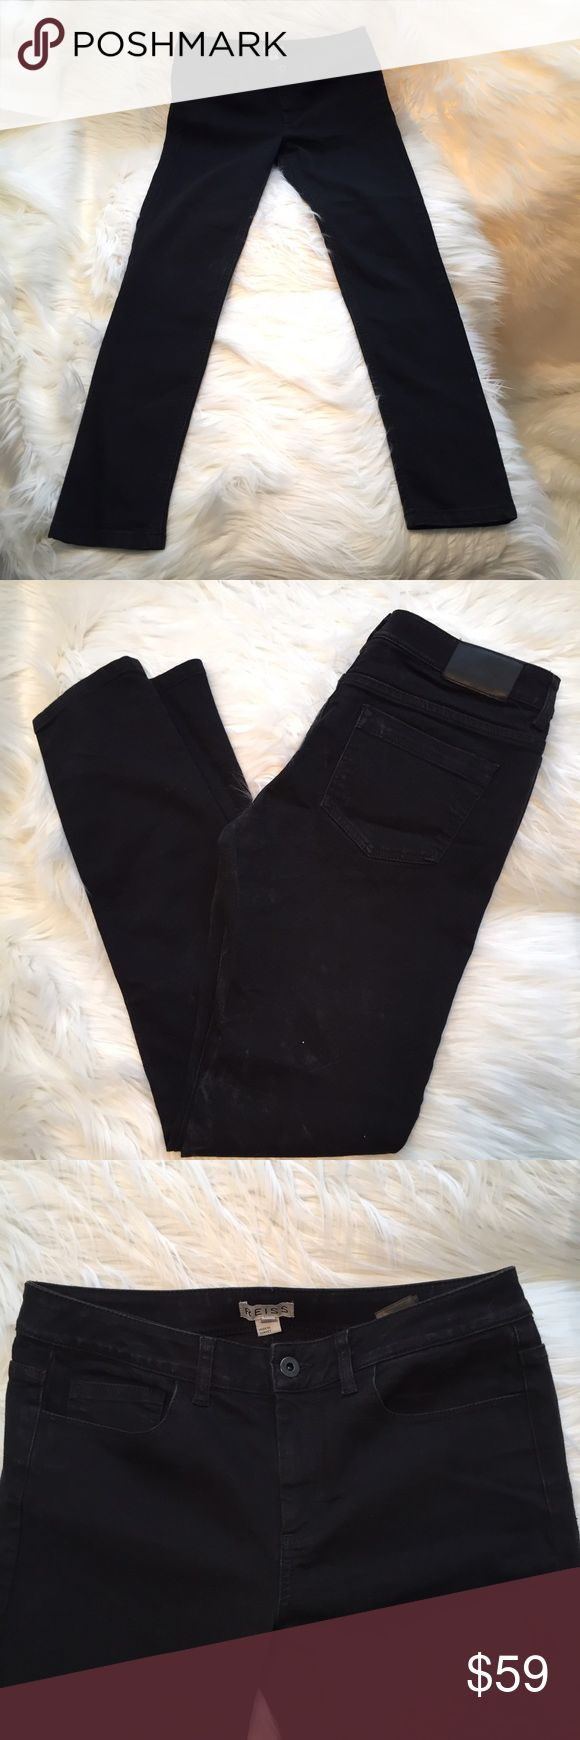 """Reiss Smith Patti skinny black jeans size 8 VGUC REISS Smith Patti jeans - skinny, stretchy, black. Size US8. 31"""" unstretched waist. 9.25"""" rise. 31"""" inseam. 51% cotton. 26% viscose. 21% polyester. 2% elastane. These jeans are a deep dark black but I have overexposed the photos to show detail. Reiss Jeans Skinny"""